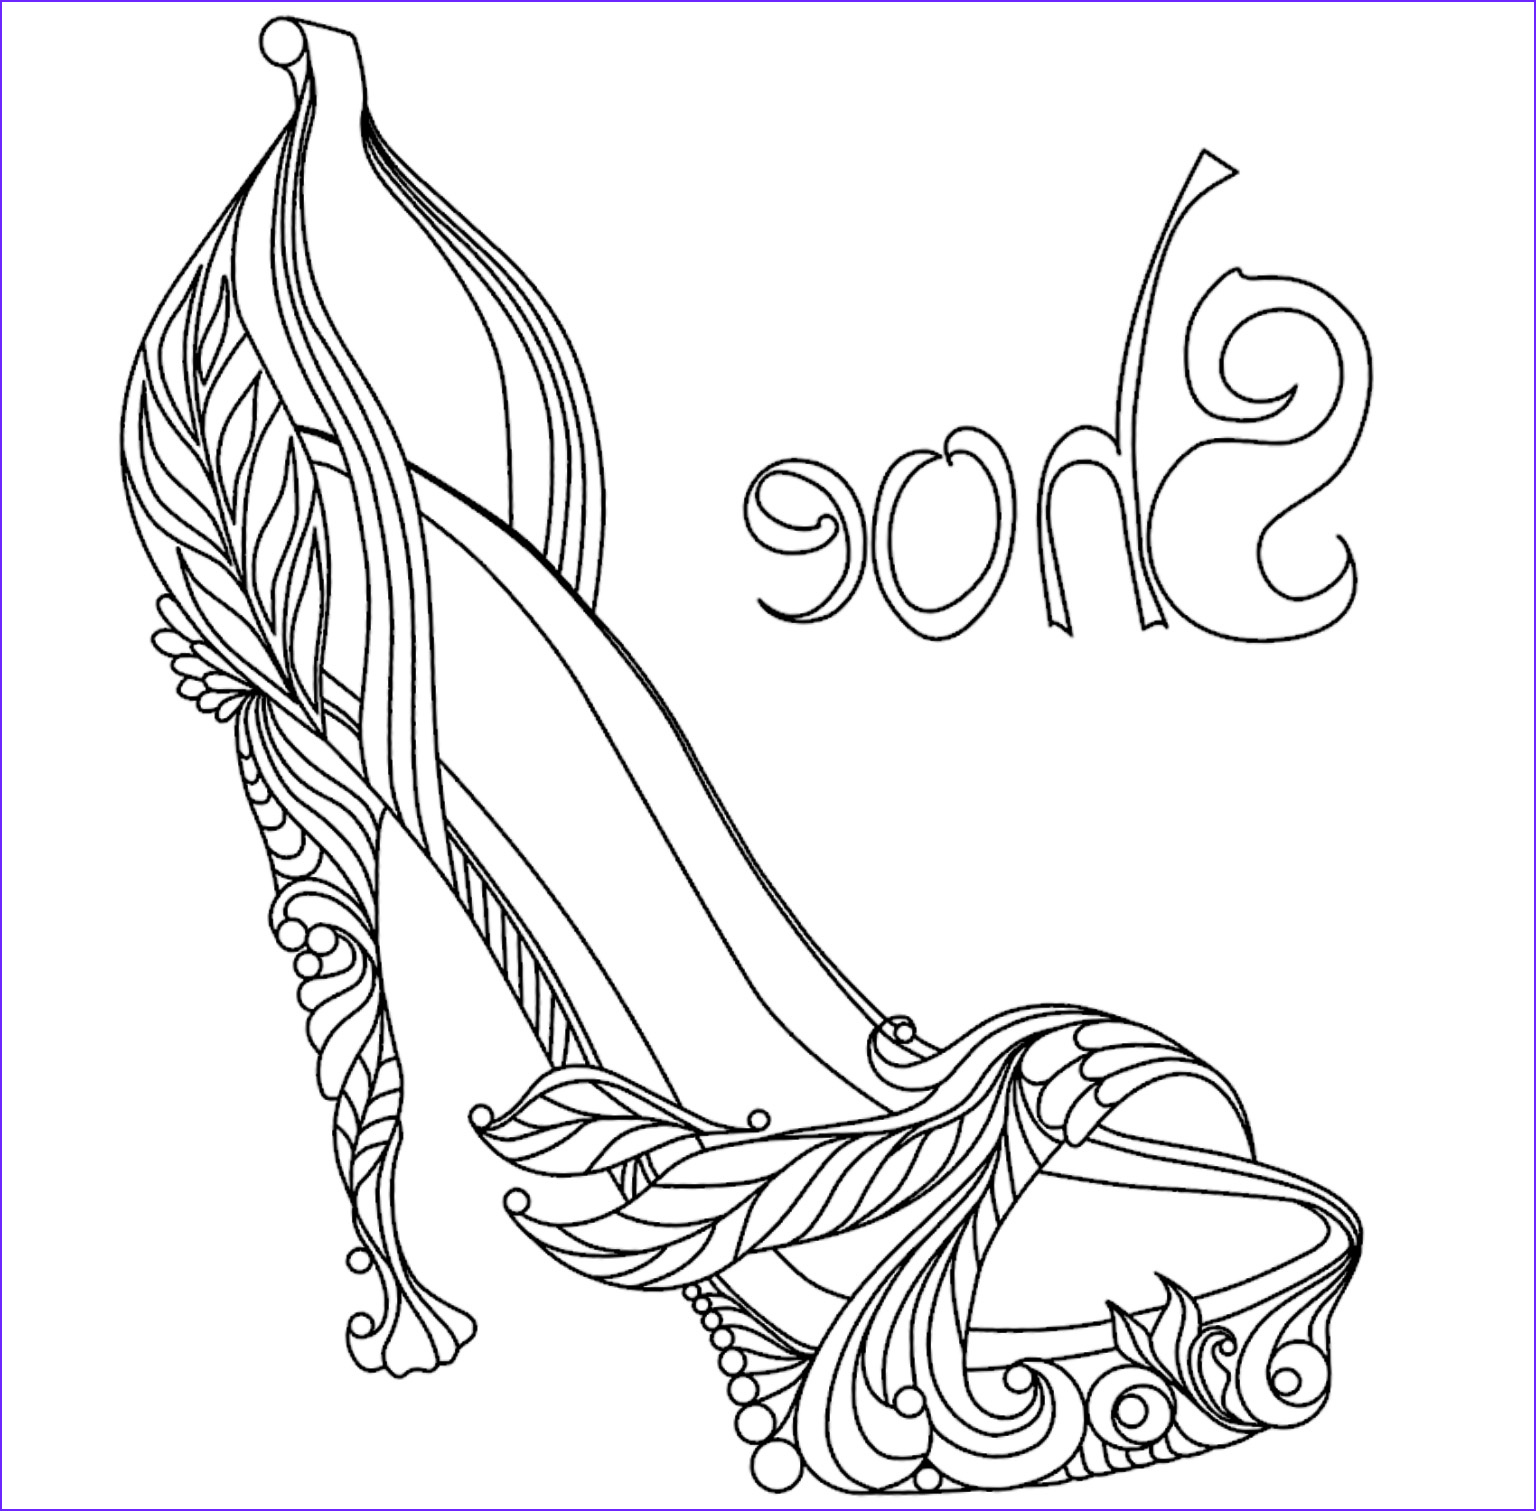 Coloring Shoes New Photos High Heel Coloring Pages at Getcolorings